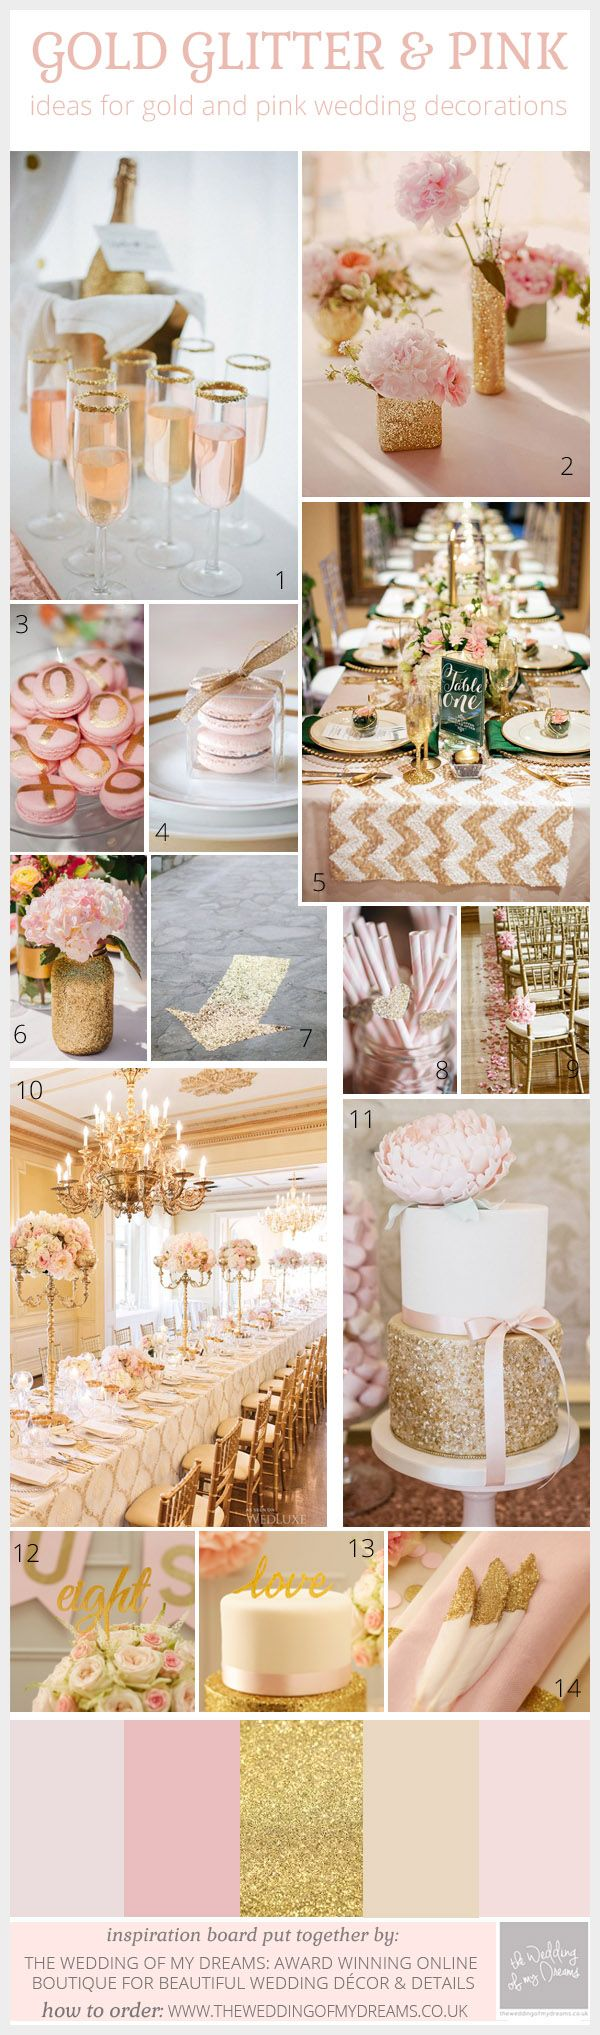 Pink And Gold Glitter Wedding Inspiration Board Decoration Ideas